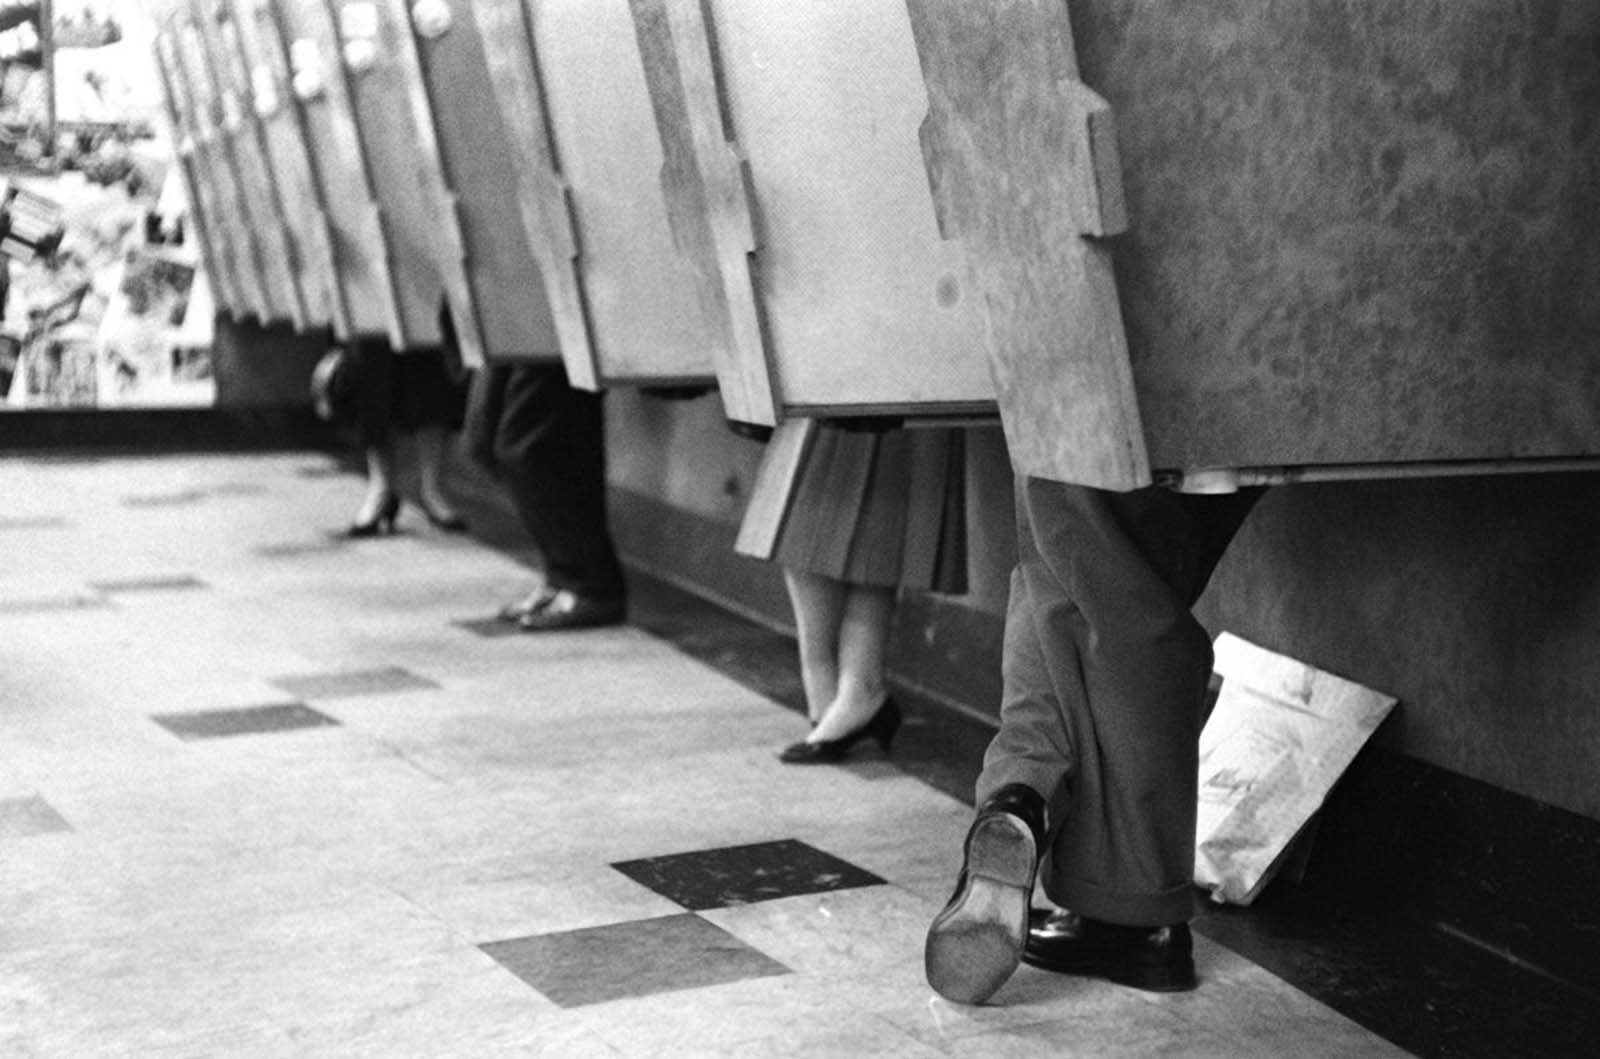 Customers in listening booths while standing up. 1958.